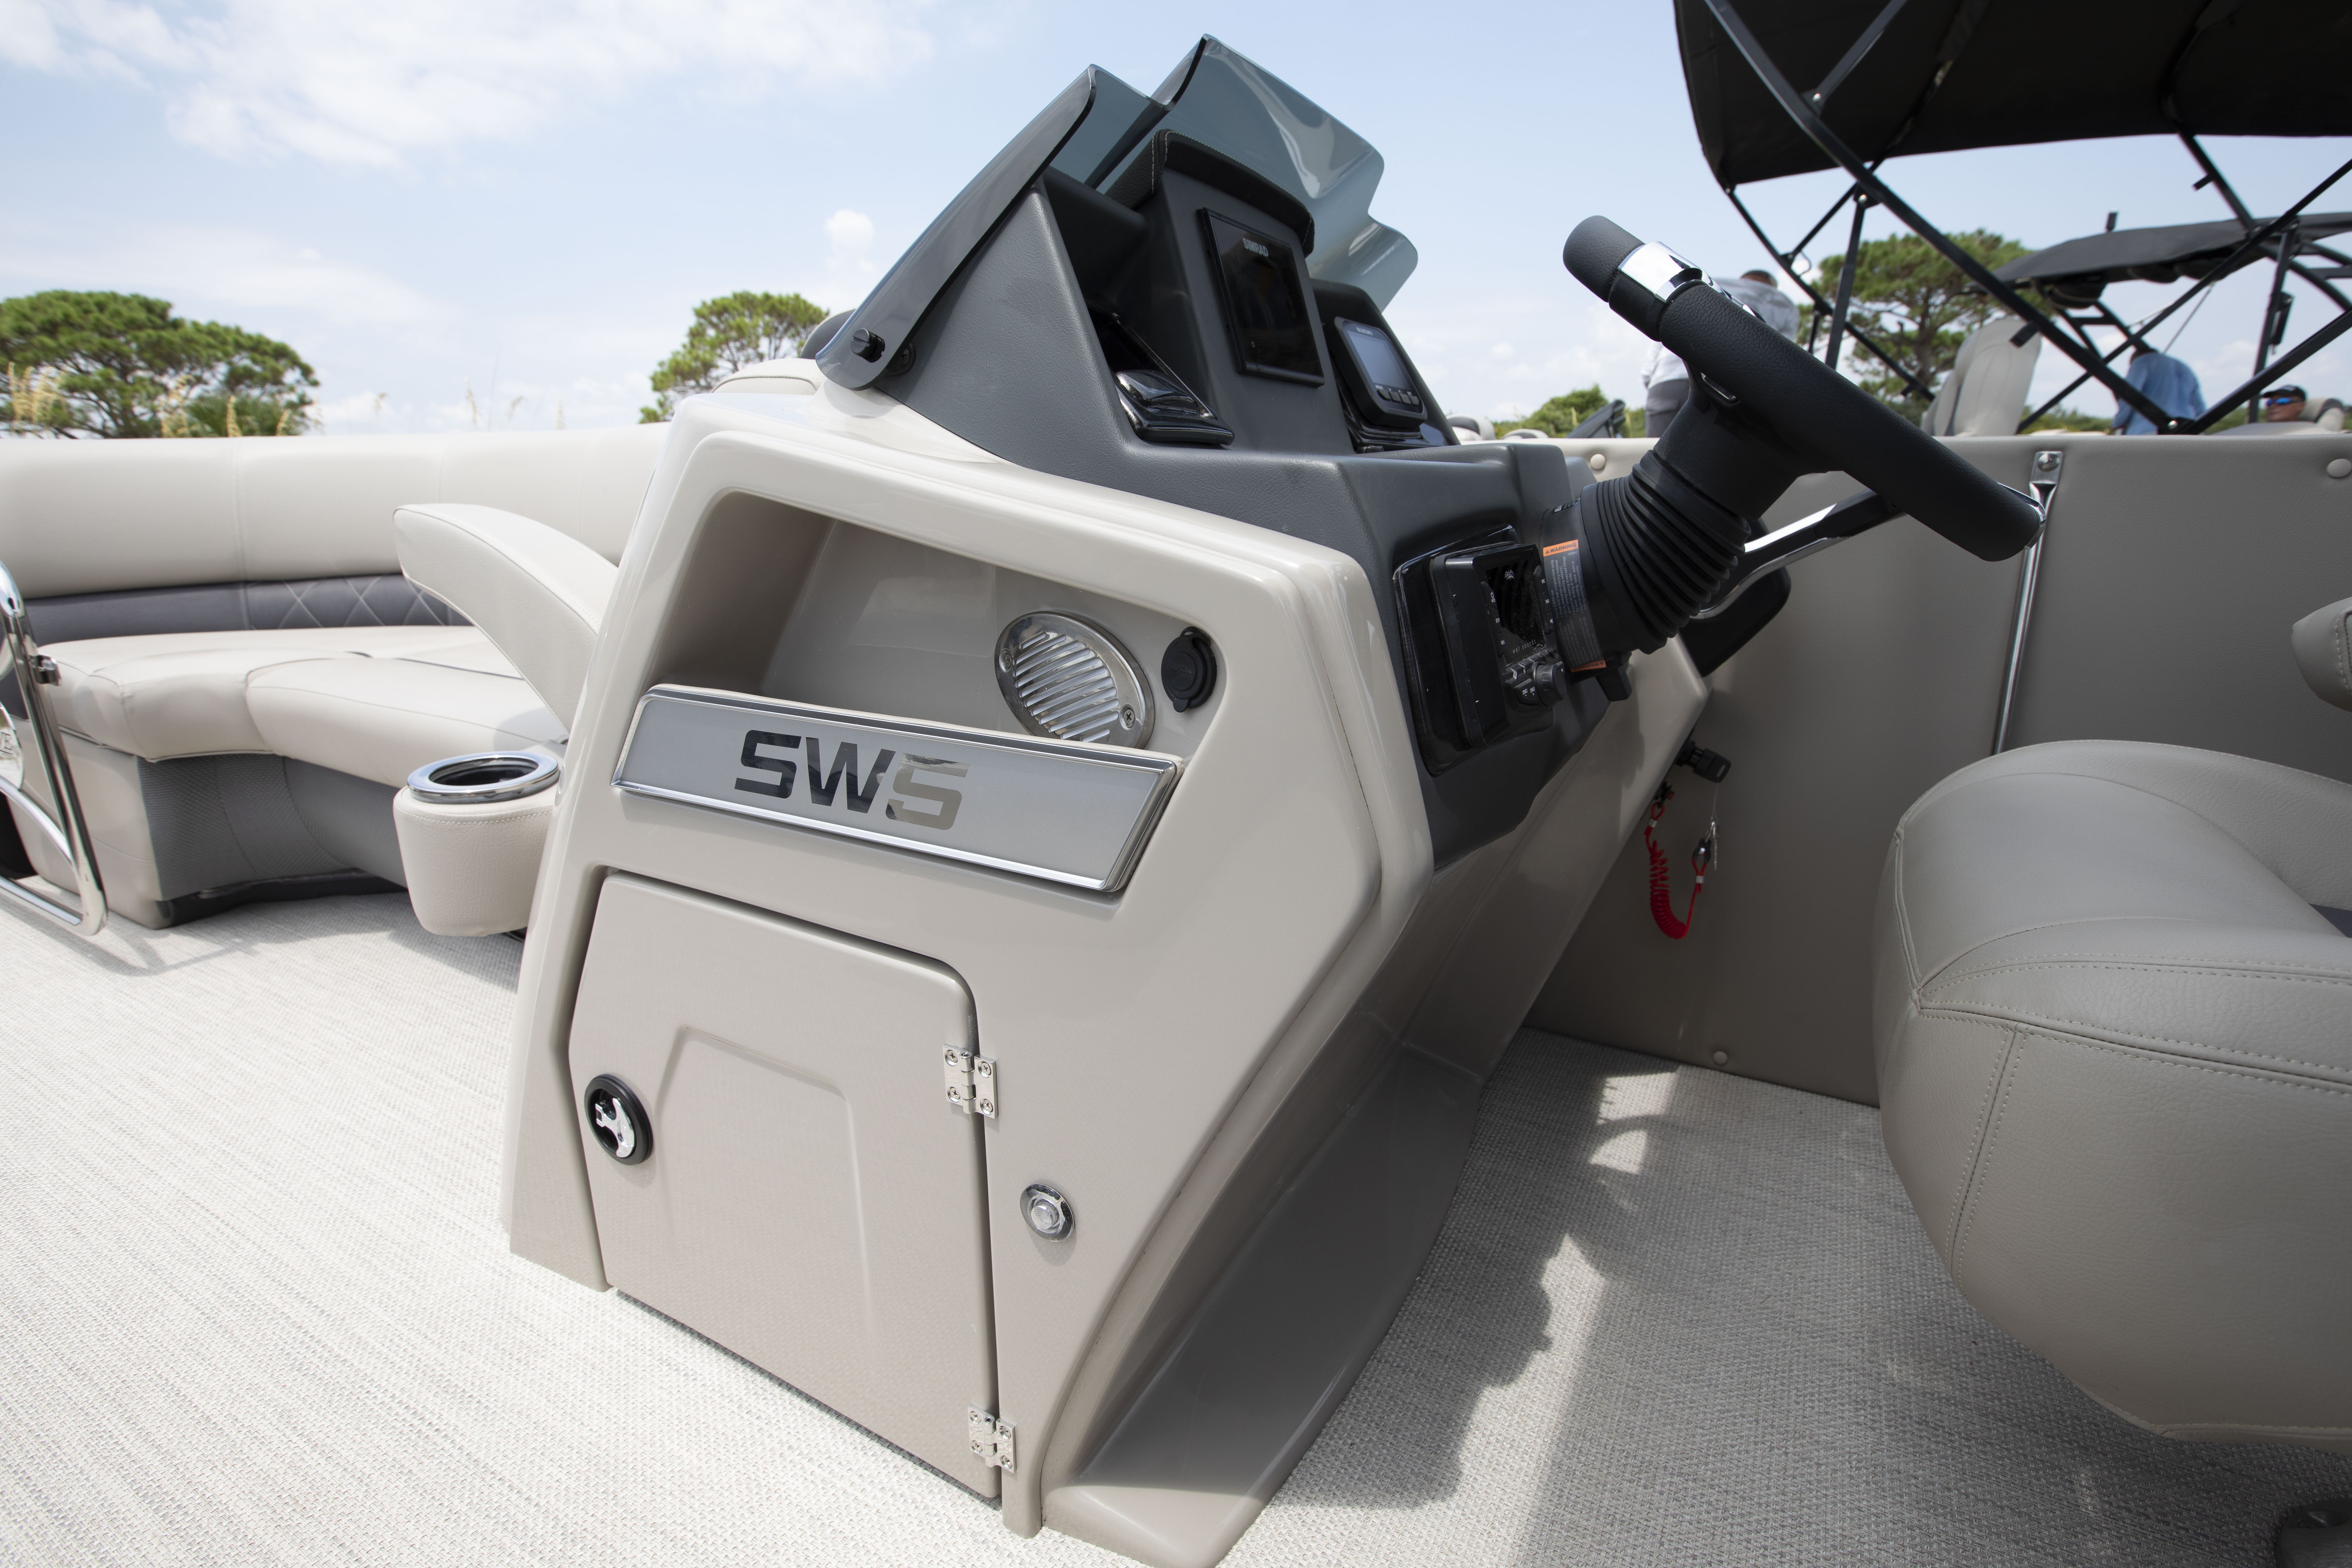 2021 Silver Wave 2210 SW5 CLS Gallery Photo Thumb